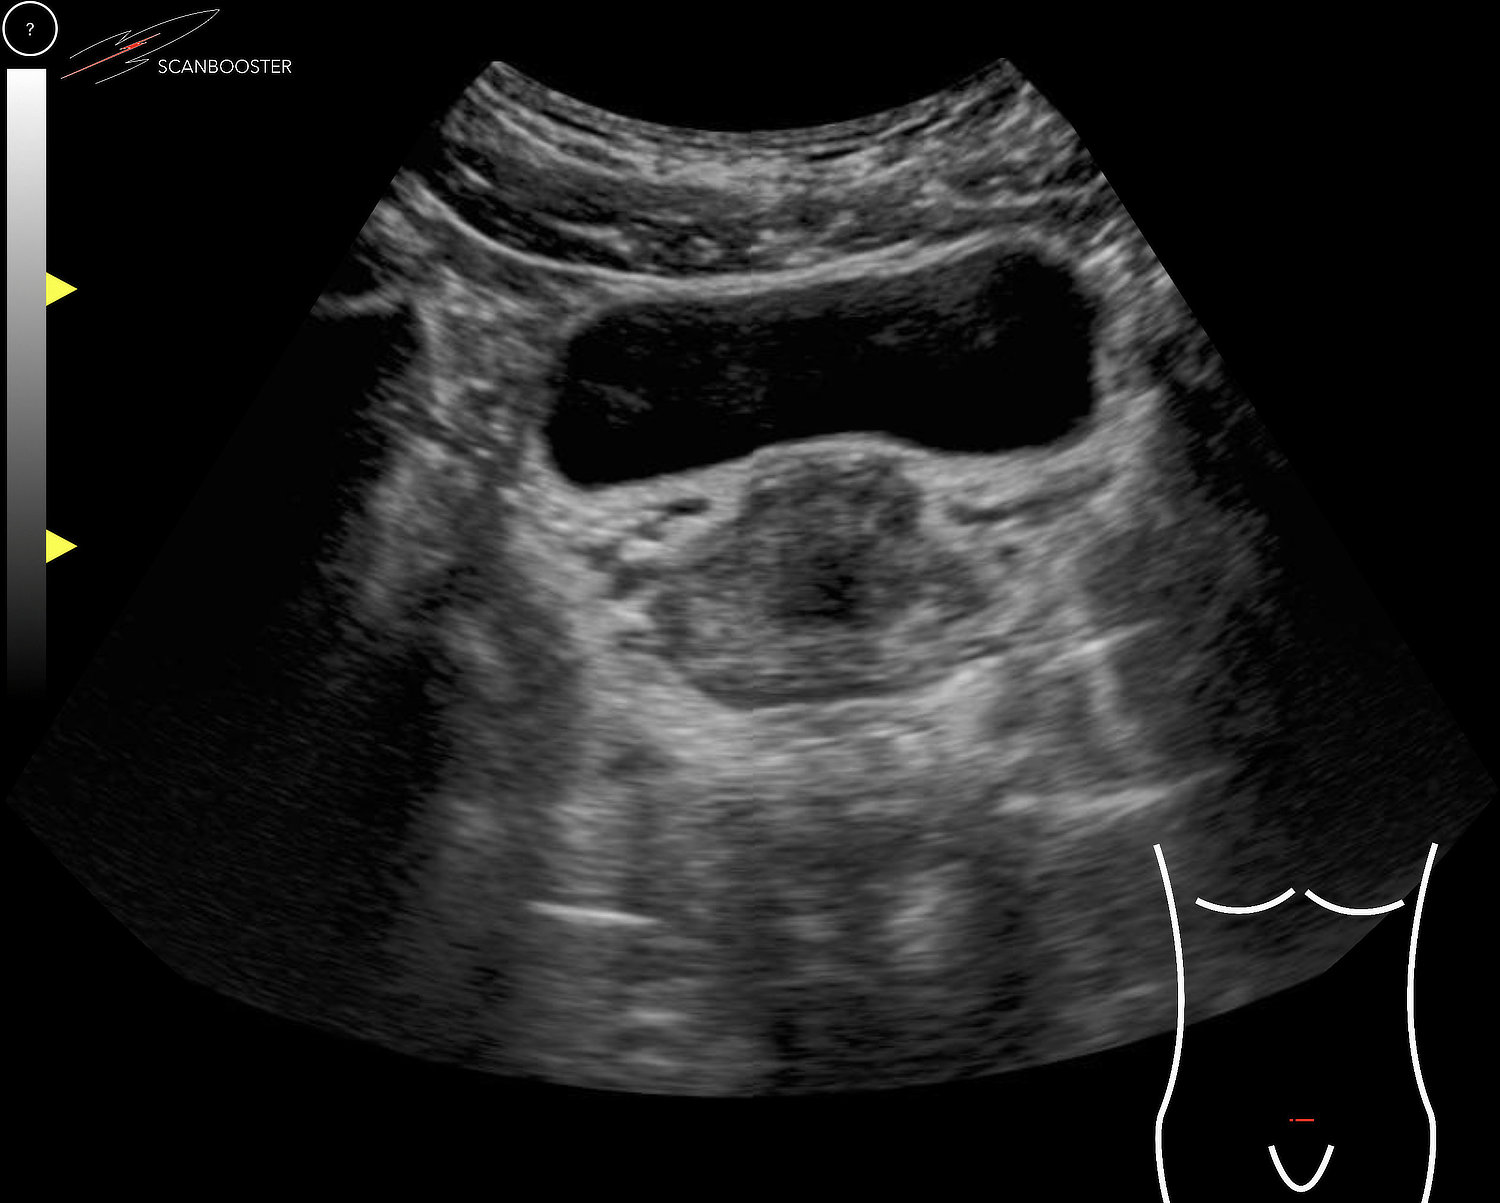 Physiologic Prostate Gland Ultrasound